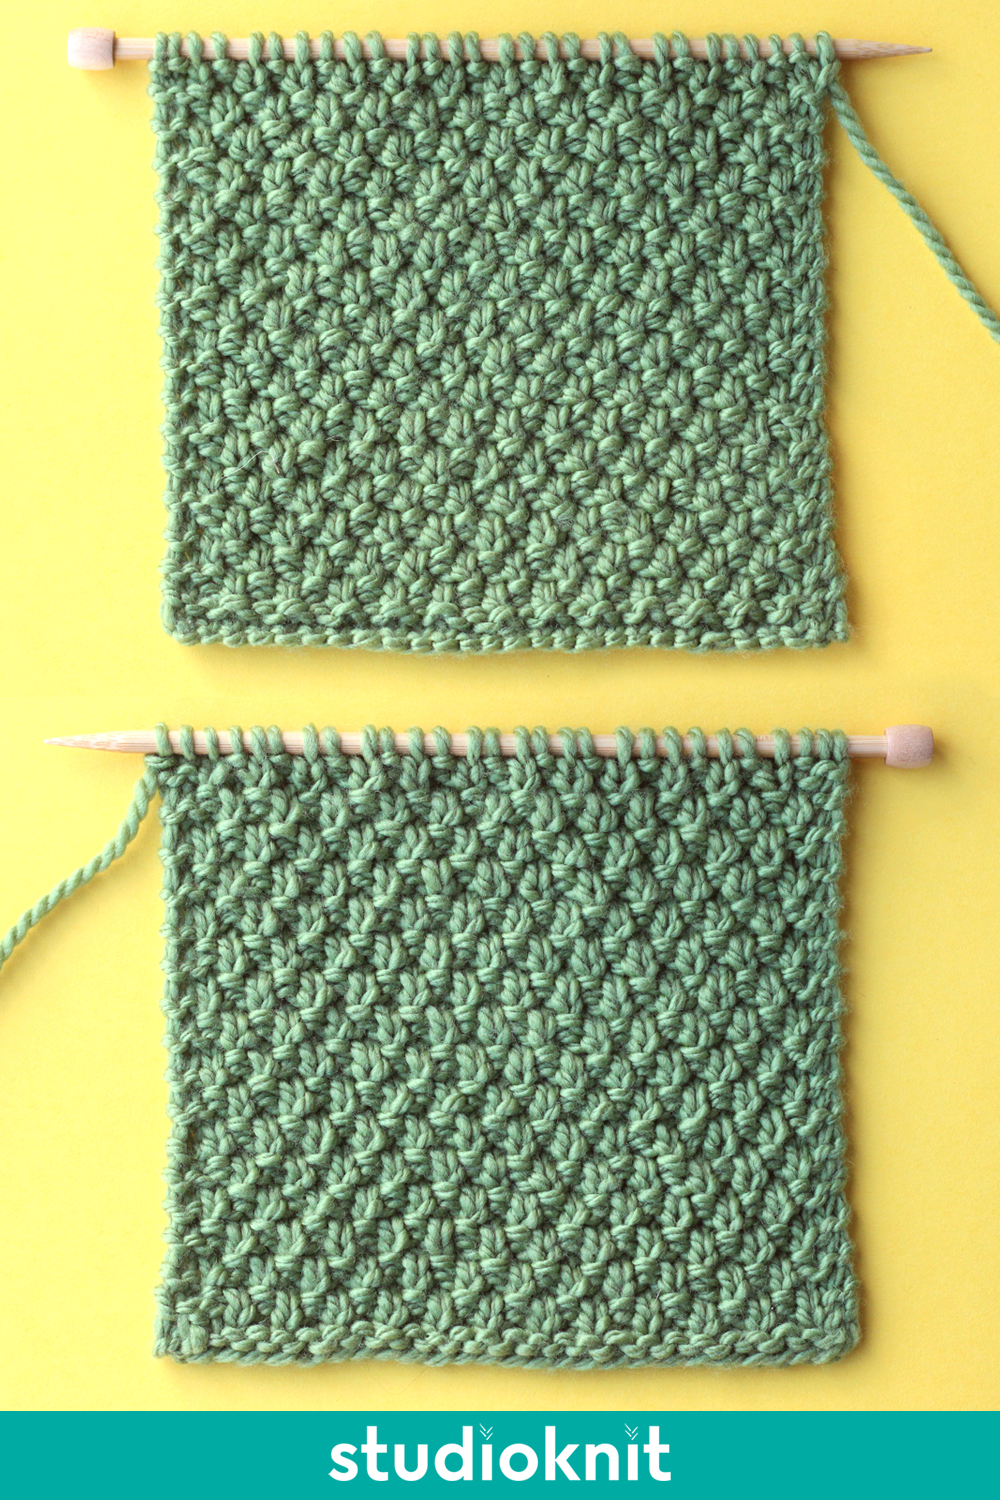 Right and wrong sides of the Irish Moss Knit Stitch Pattern in green color yarn on knitting needle.